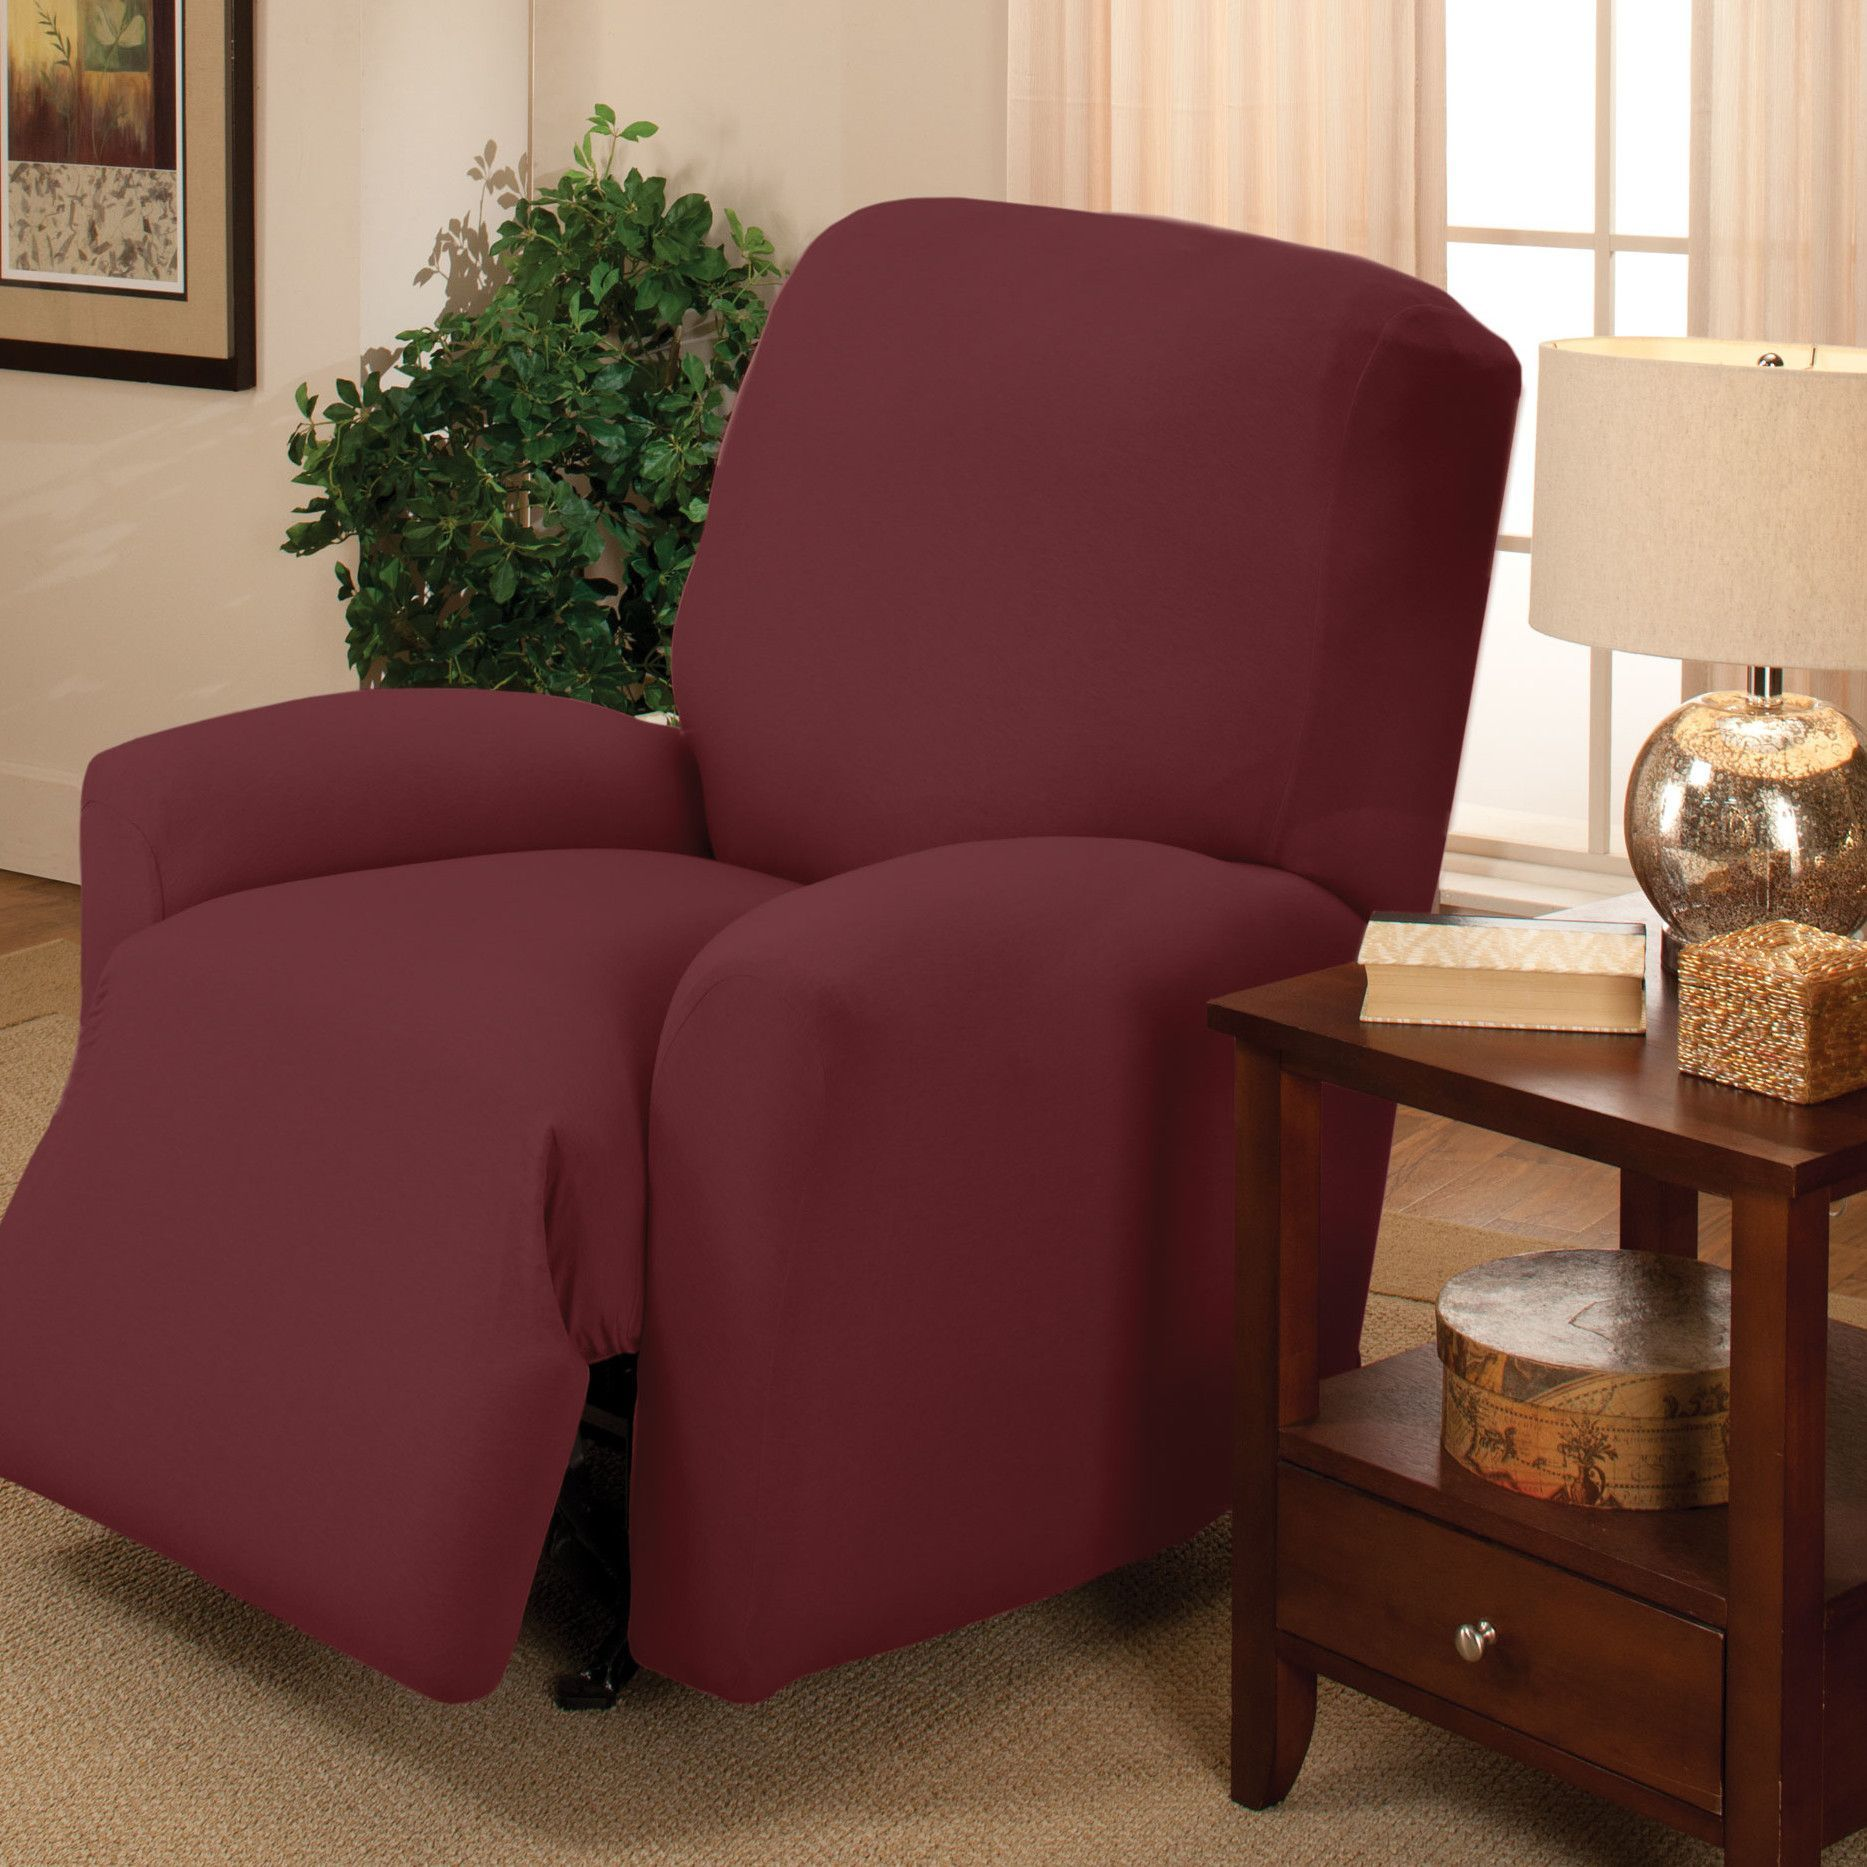 slipcovers for corduroy stretch recliners pin sure recliner fit taupe slipcover pixel